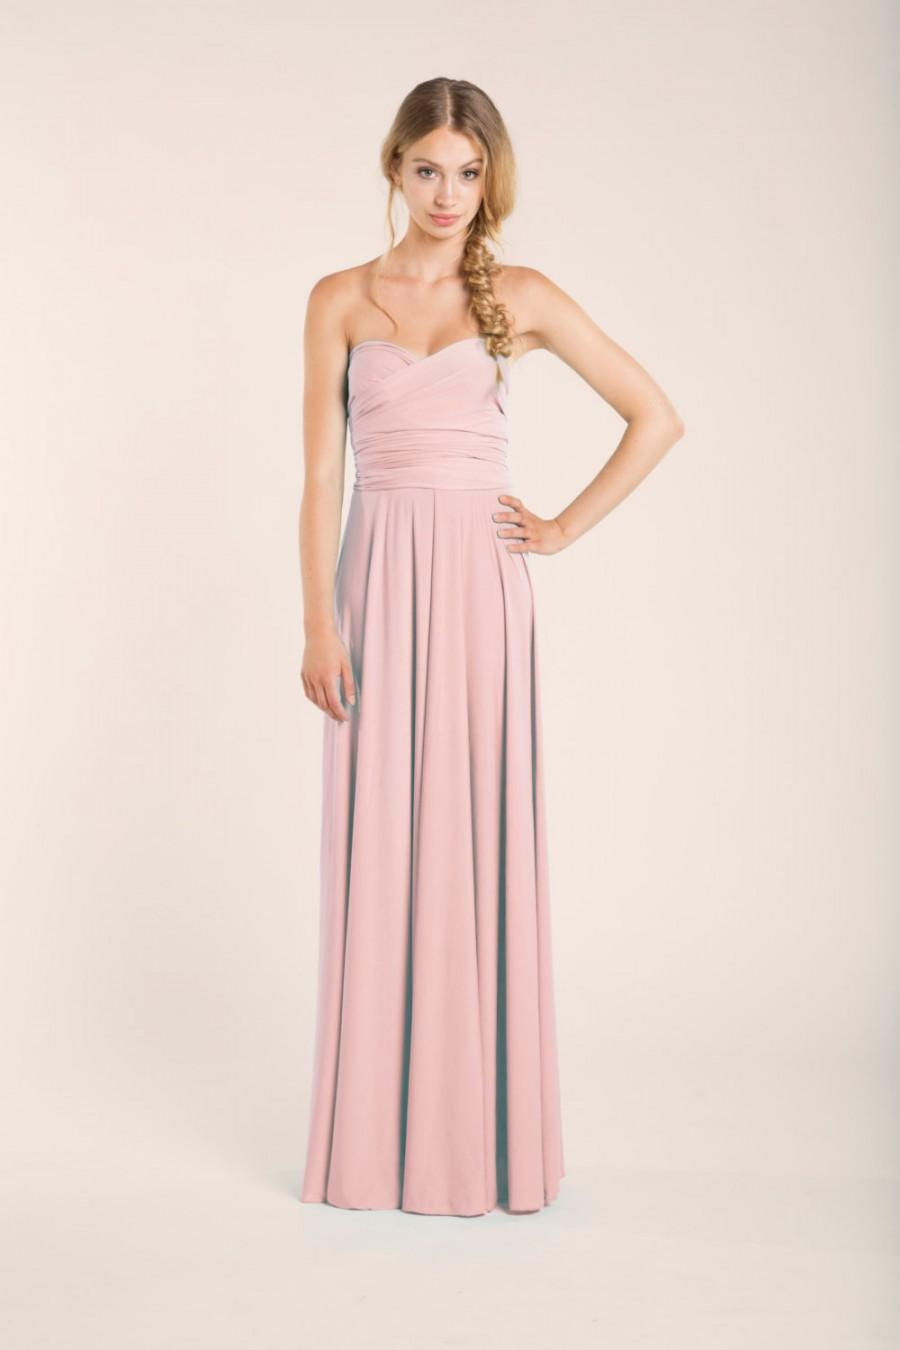 Rose Quartz Infinity Dress, Long Rose Quartz Bridesmaids Dress ...